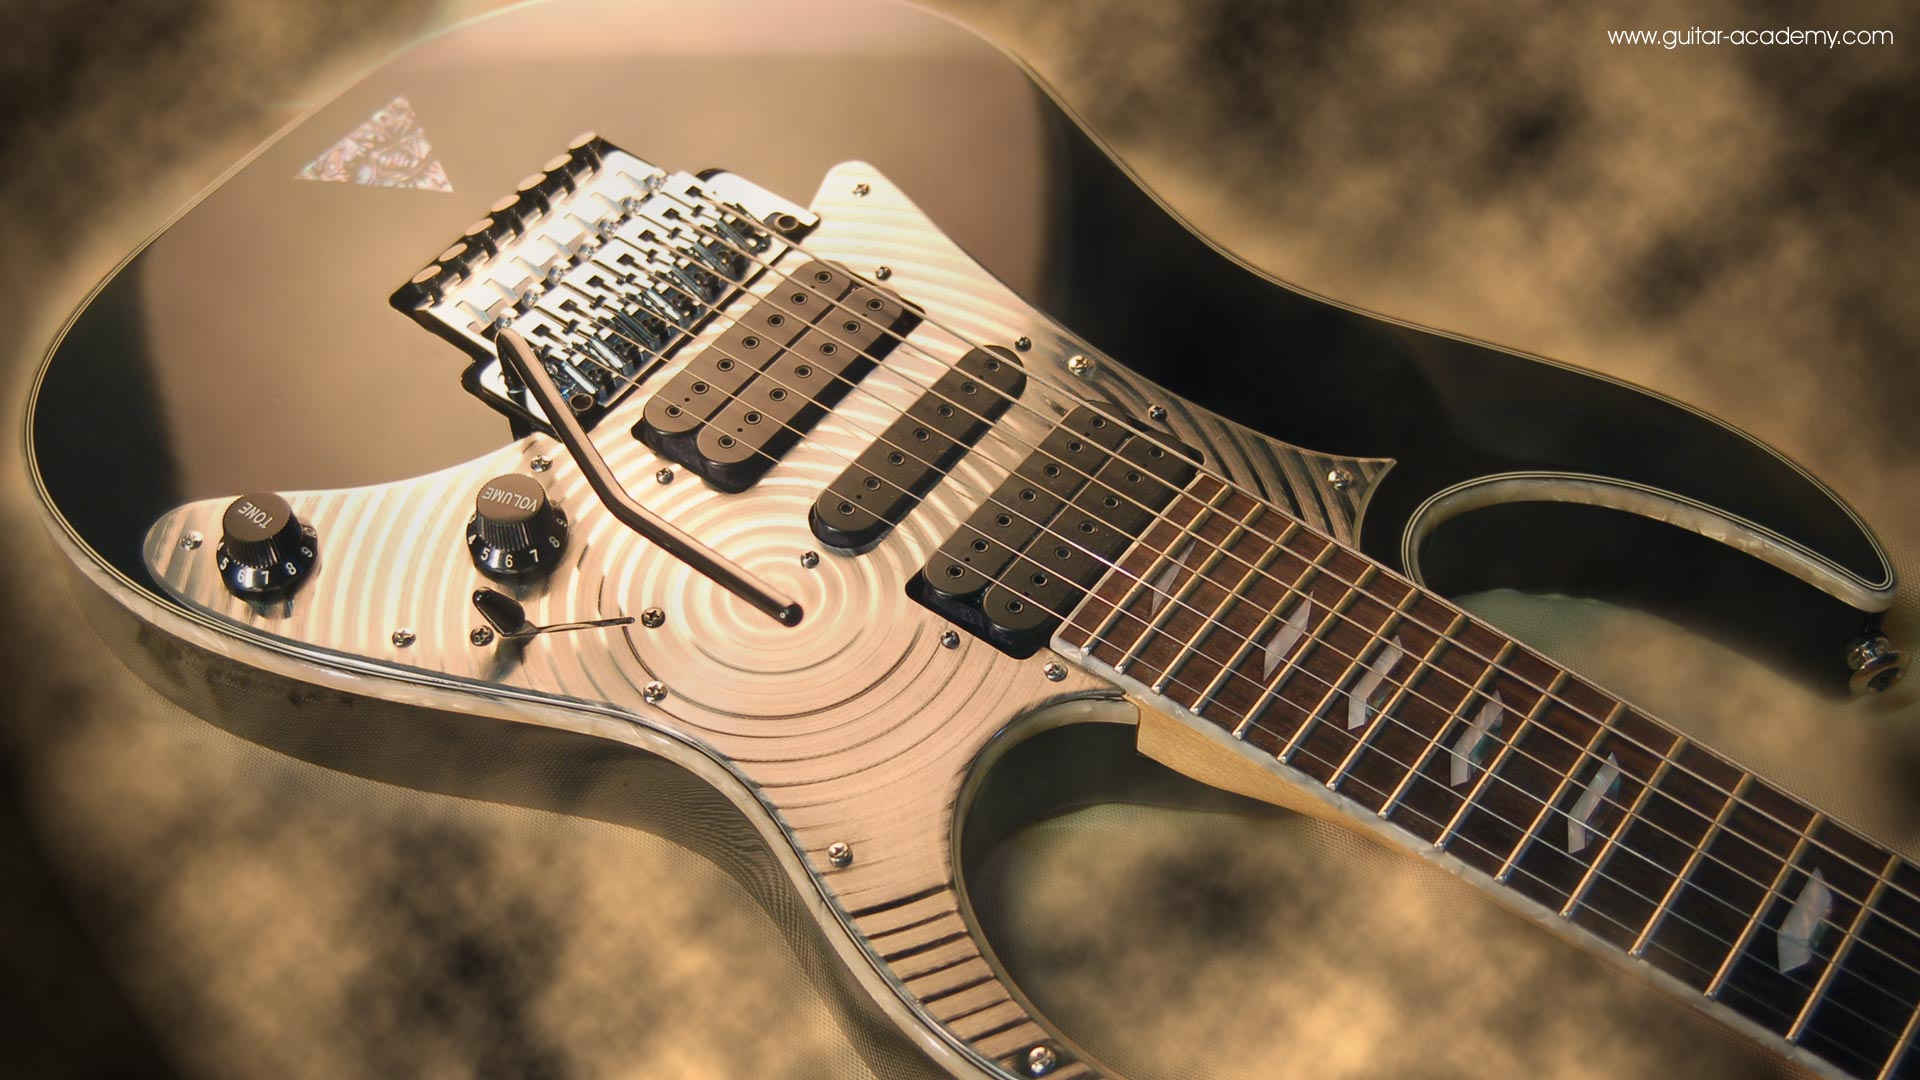 Gch Guitar Academy Free Guitar Pictures For Wallpapers